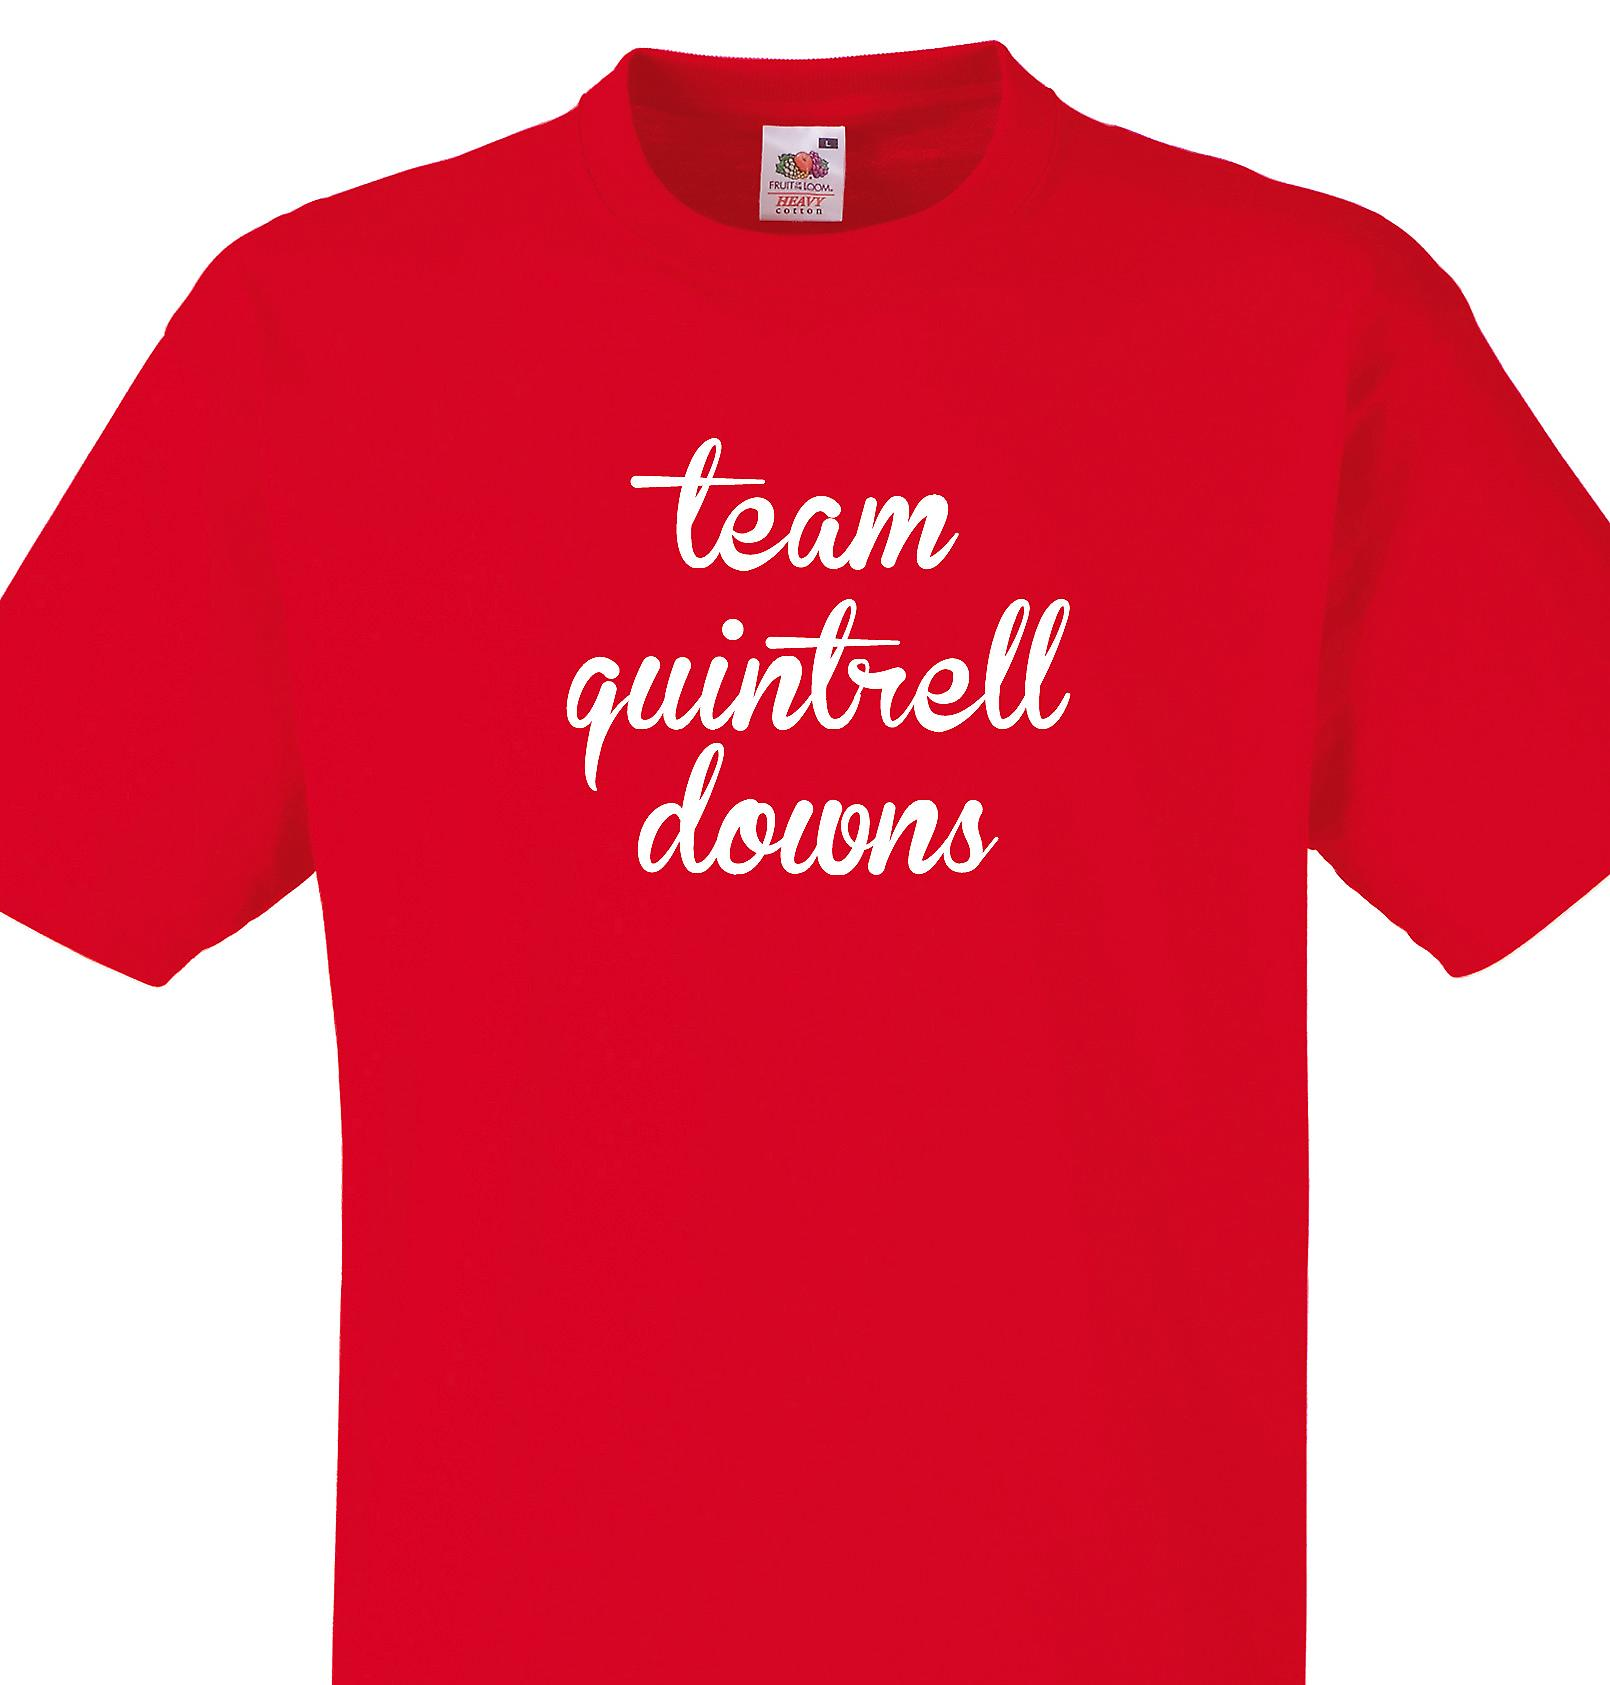 Team Quintrell downs Red T shirt